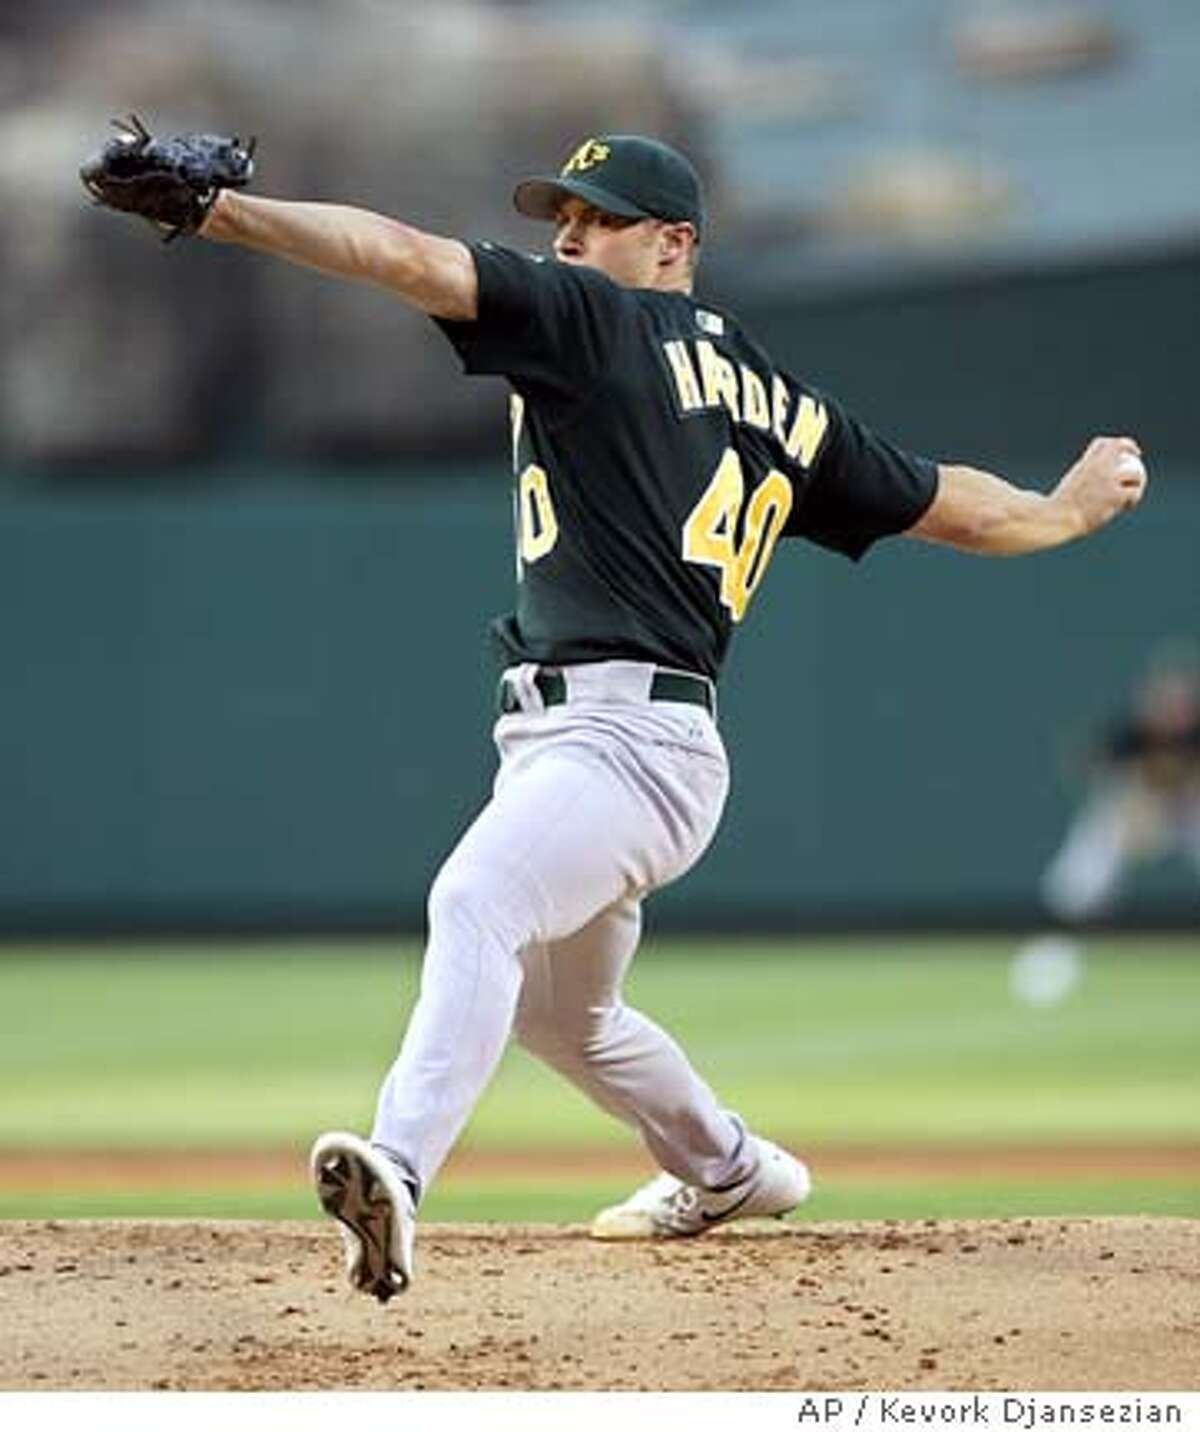 Oakland Atheltics' pitcher Rich Harden unwinds against the Los Angeles Angels during the first inning of the game Tuesday, July 19, 2005, in Anaheim, Calif. (AP Photo/Kevork Djansezian)